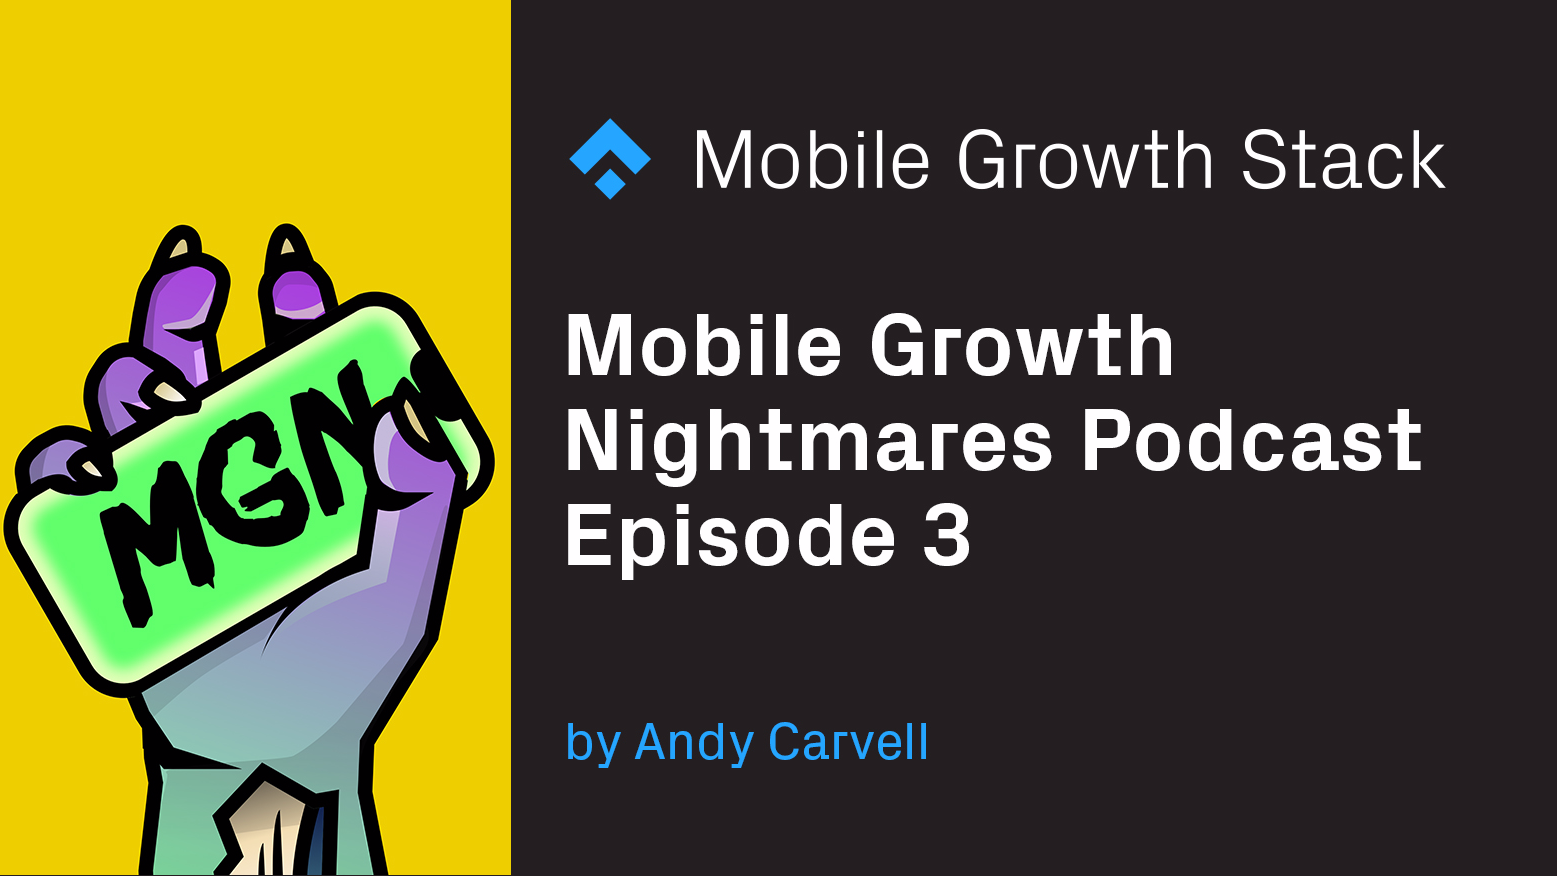 Mobile Growth Nightmares Episode 3 — starring Thomas Petit from 8Fit